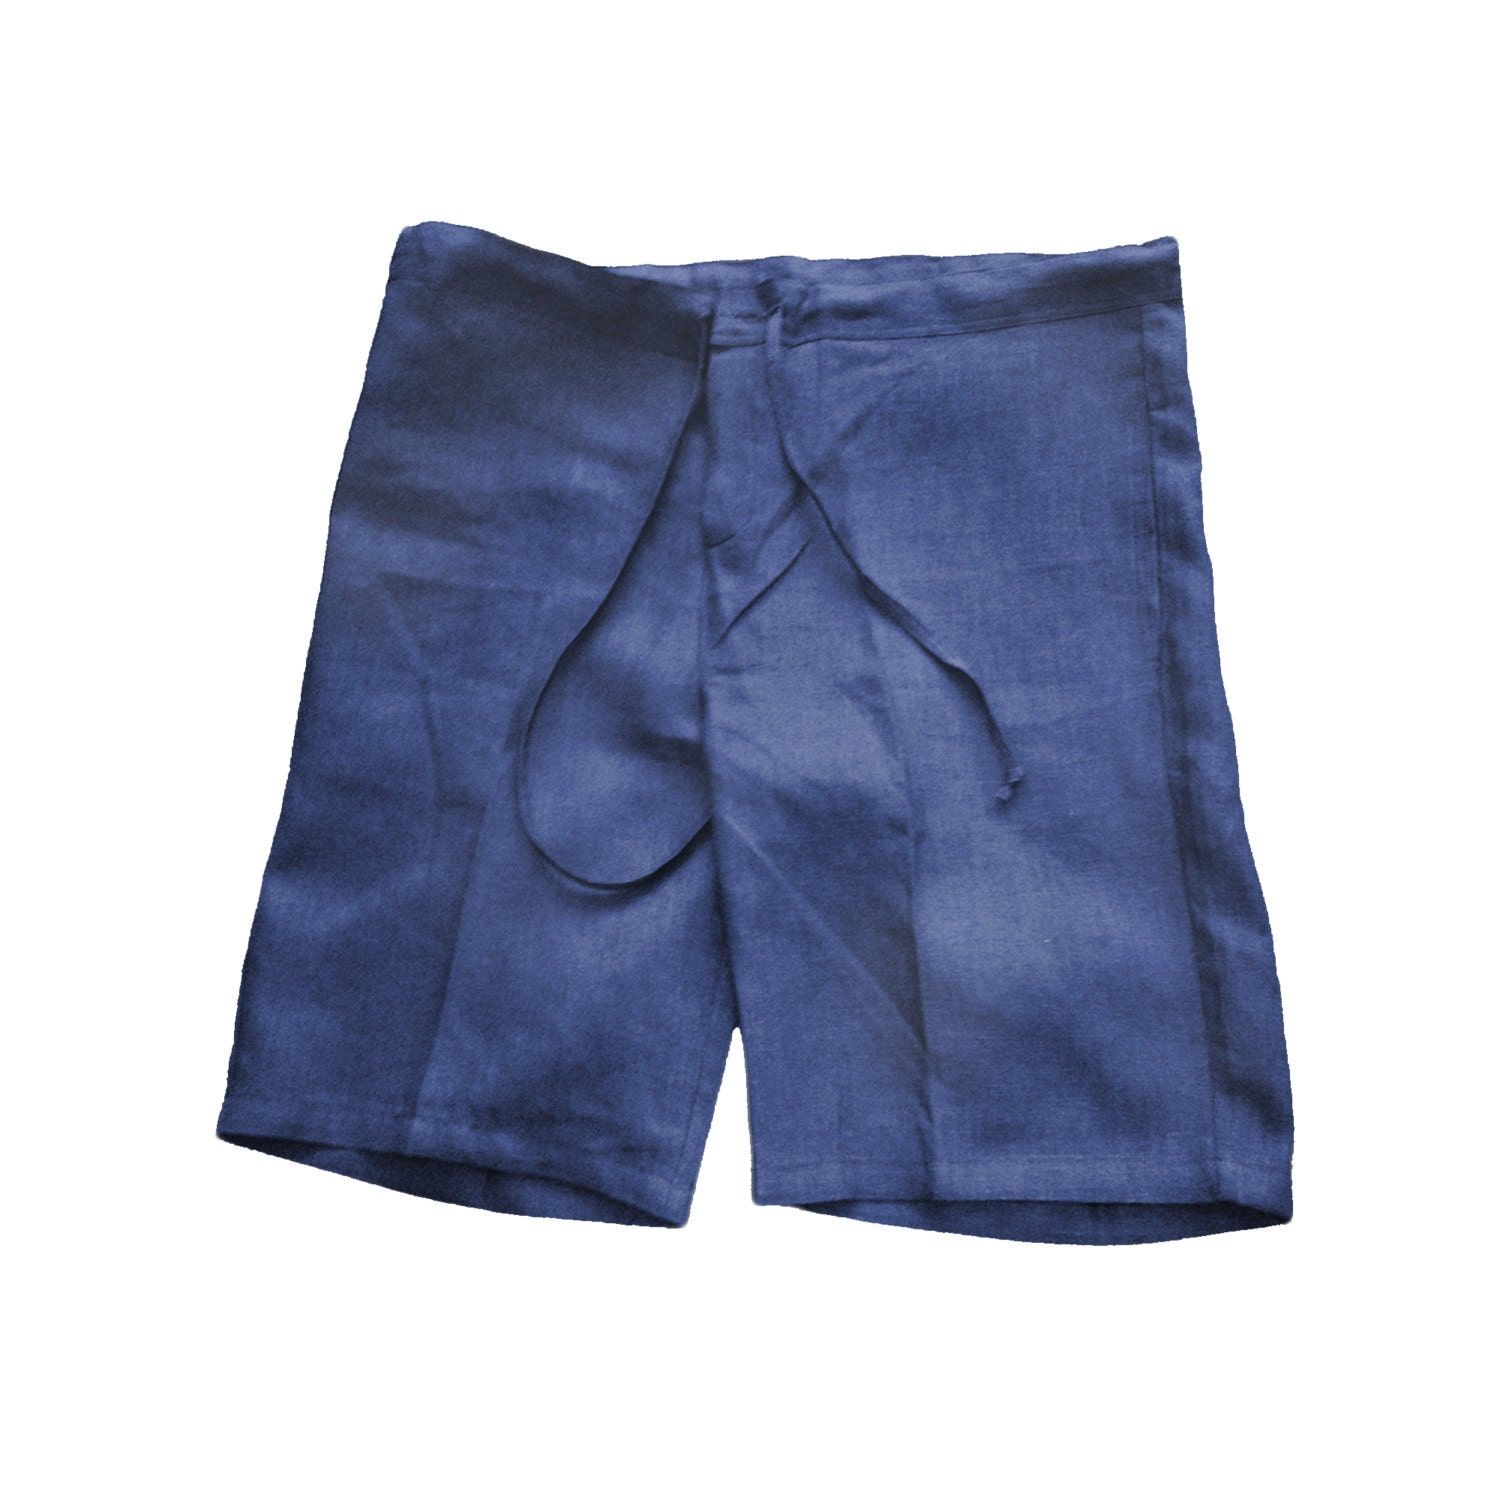 Linen Drawstring Pants For Men Men Linen Drawstring Shorts